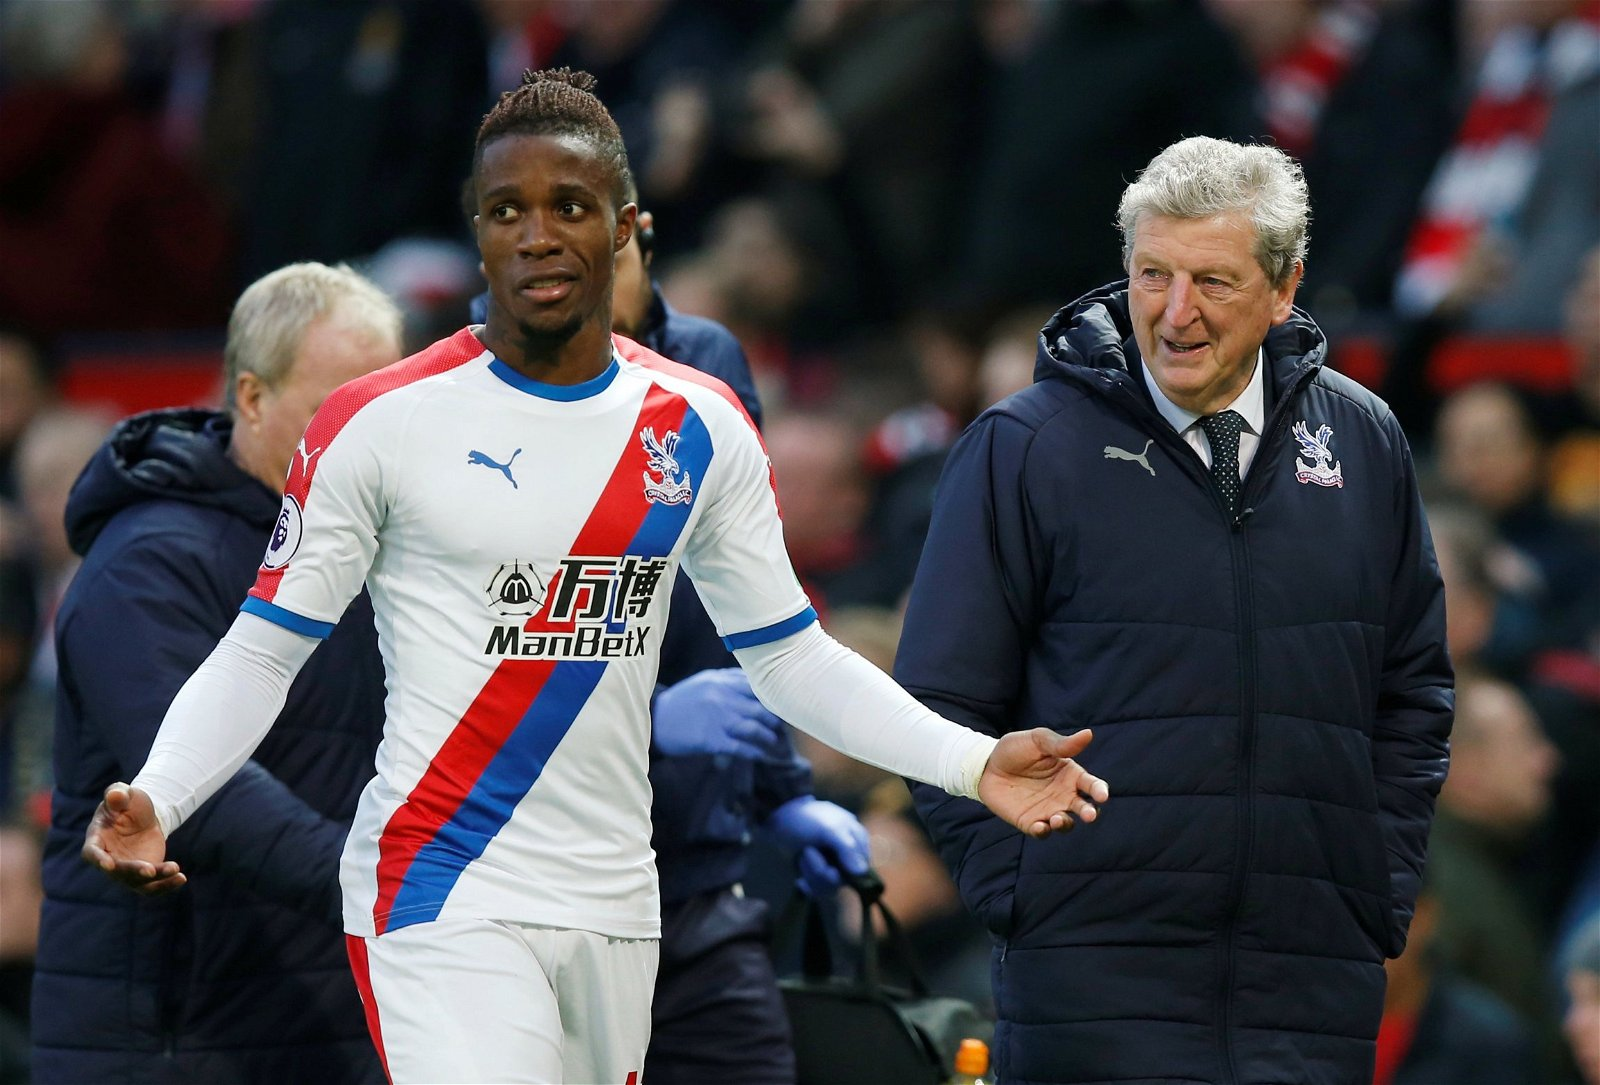 Crystal Palace's Wilfried Zaha and manager Roy Hodgson in discussion at half time at Manchester United